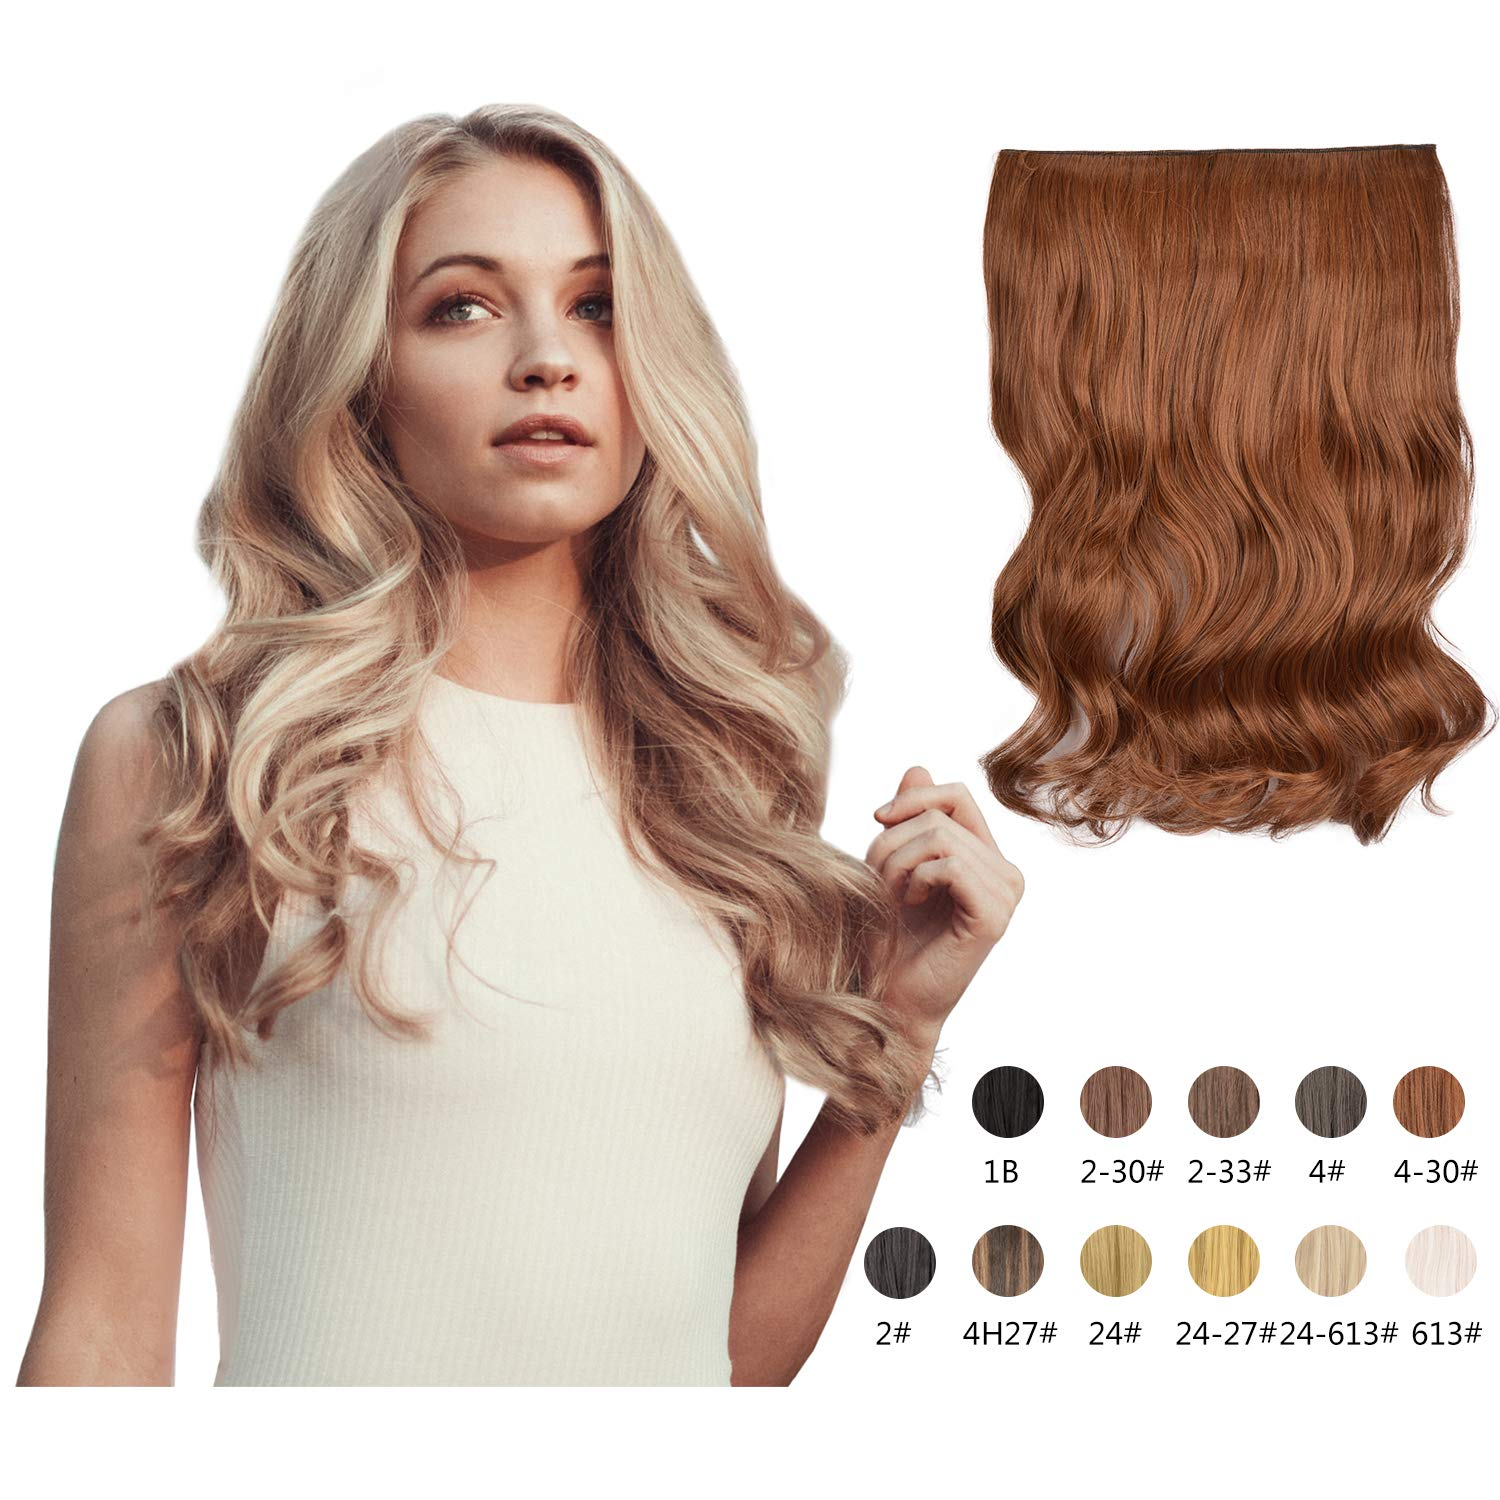 Halo Hair Extensions 20 Inch Long Natural Curly Wavy Synthetic Hairpiece Flip in Hidden Wired Hair Pieces for Women (4/30#)